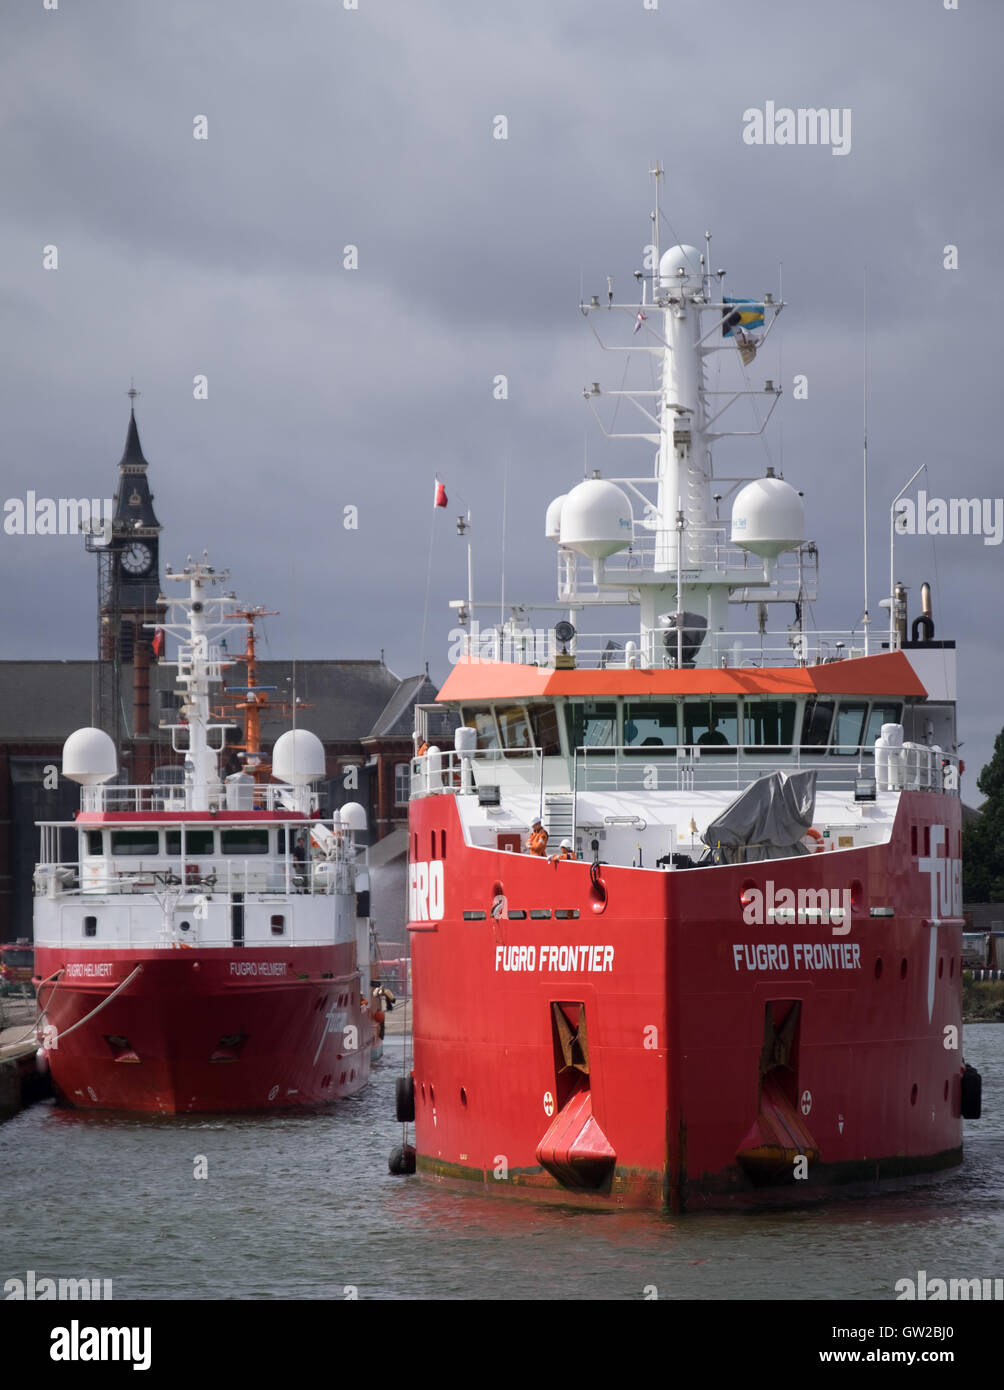 Survey vessels Fugro Helmert (left) and Fugro Frontier (right) in Grimsby Royal Dock during the Hornsea Project - Stock Image